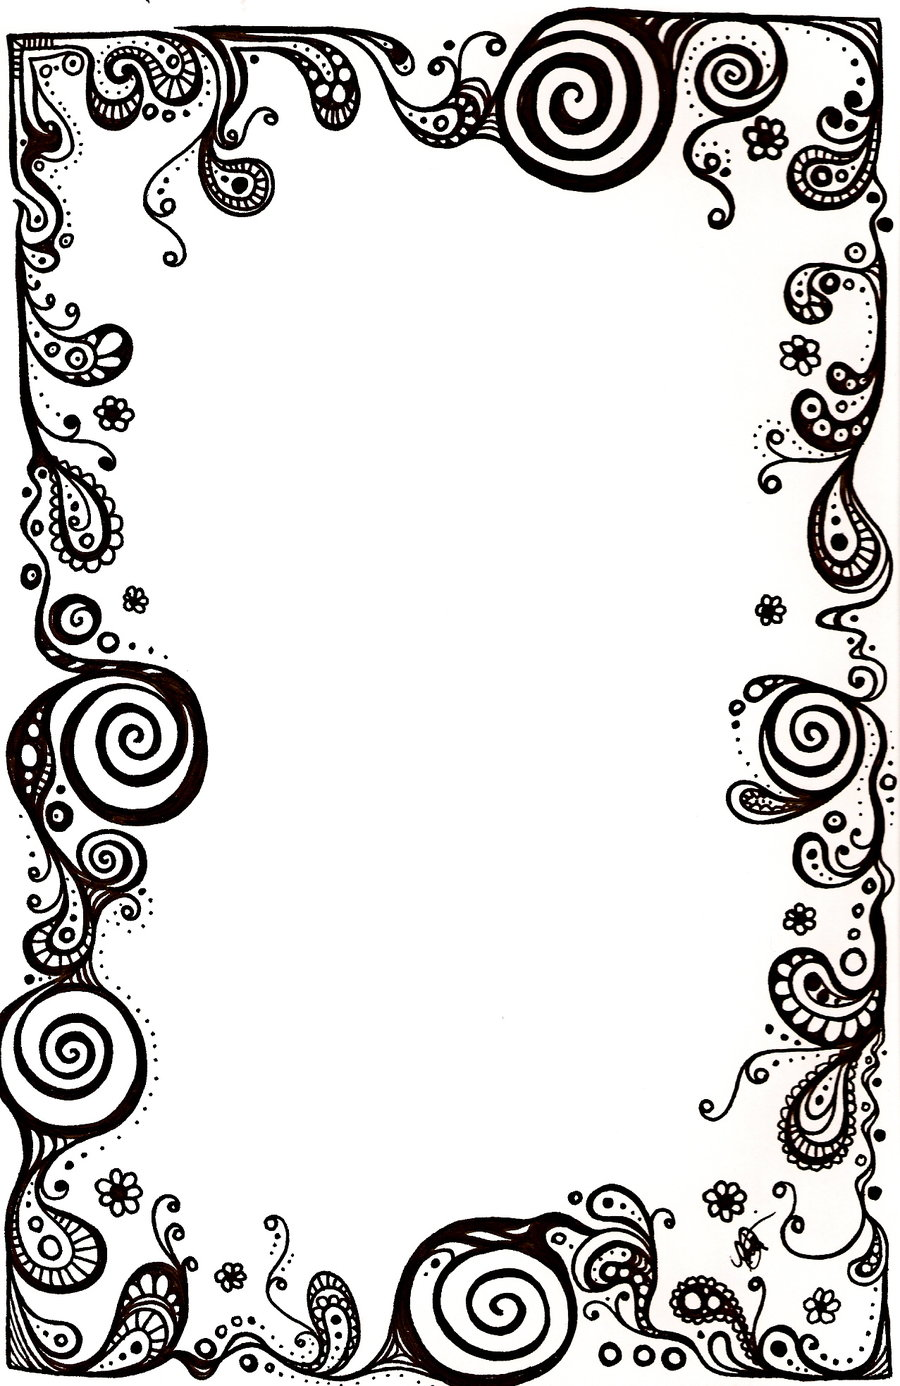 Free Cool Border, Download Free Clip Art, Free Clip Art on